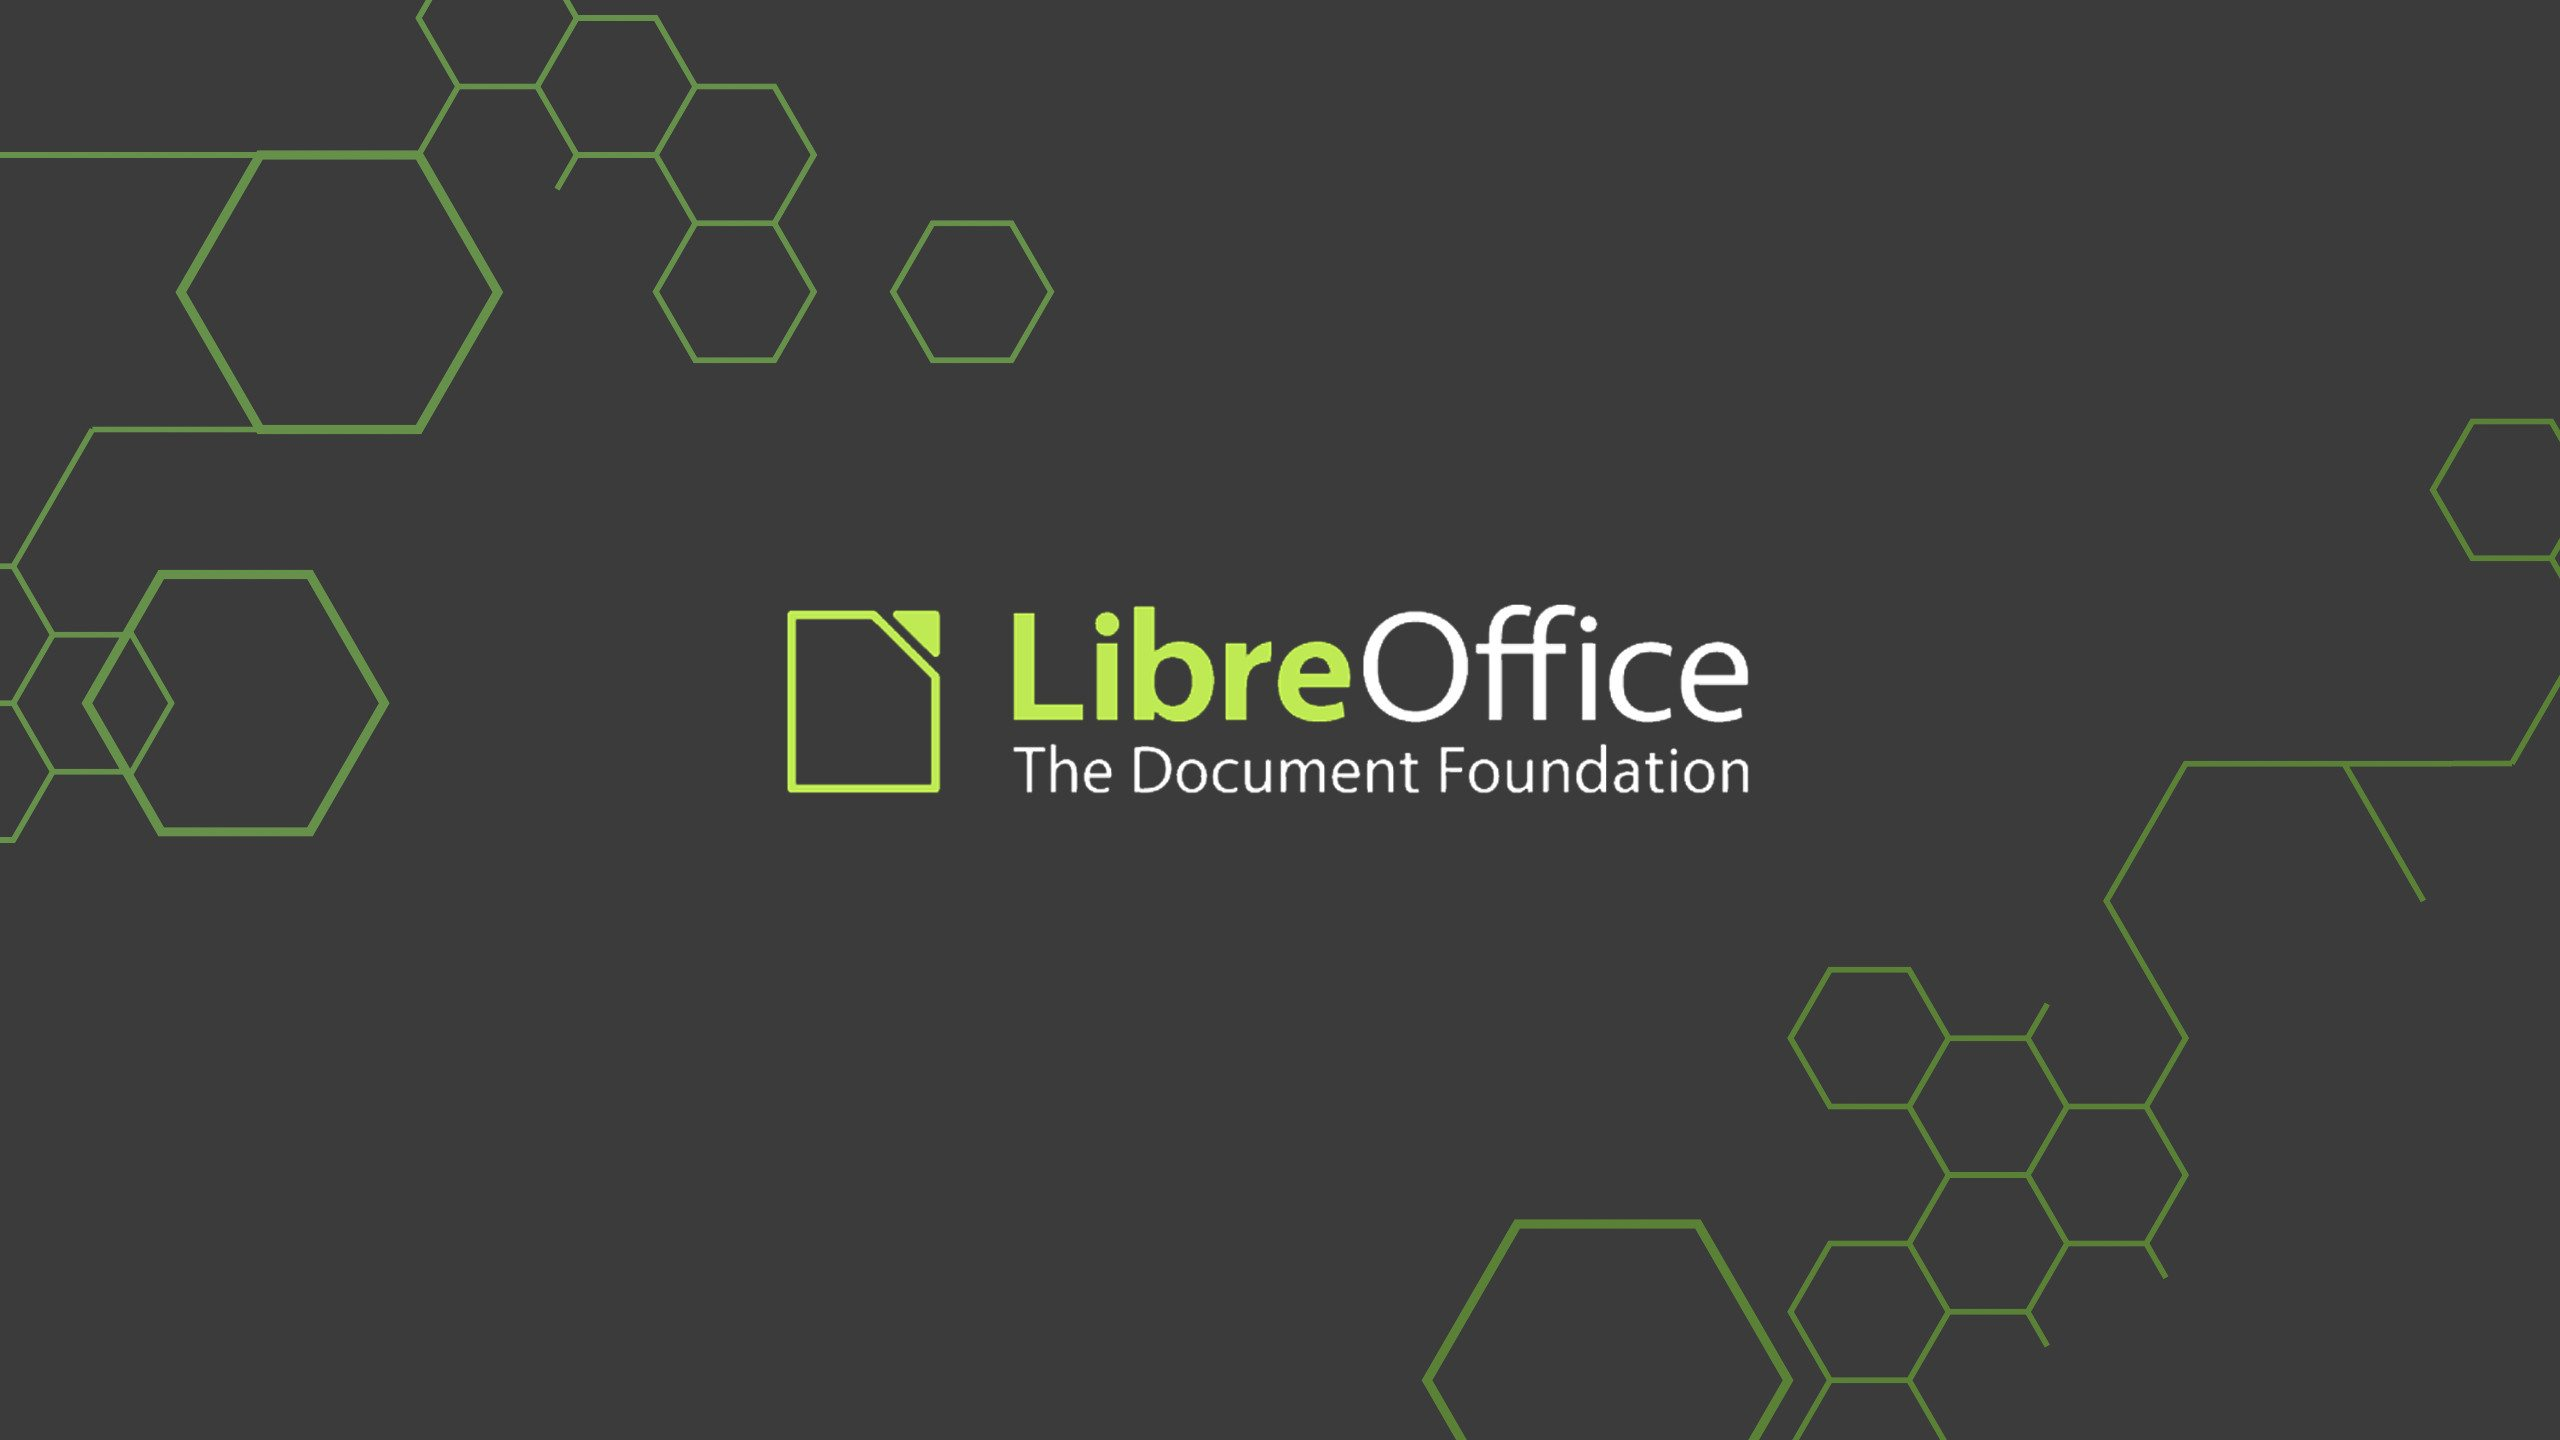 LibreOffice Conference 2012